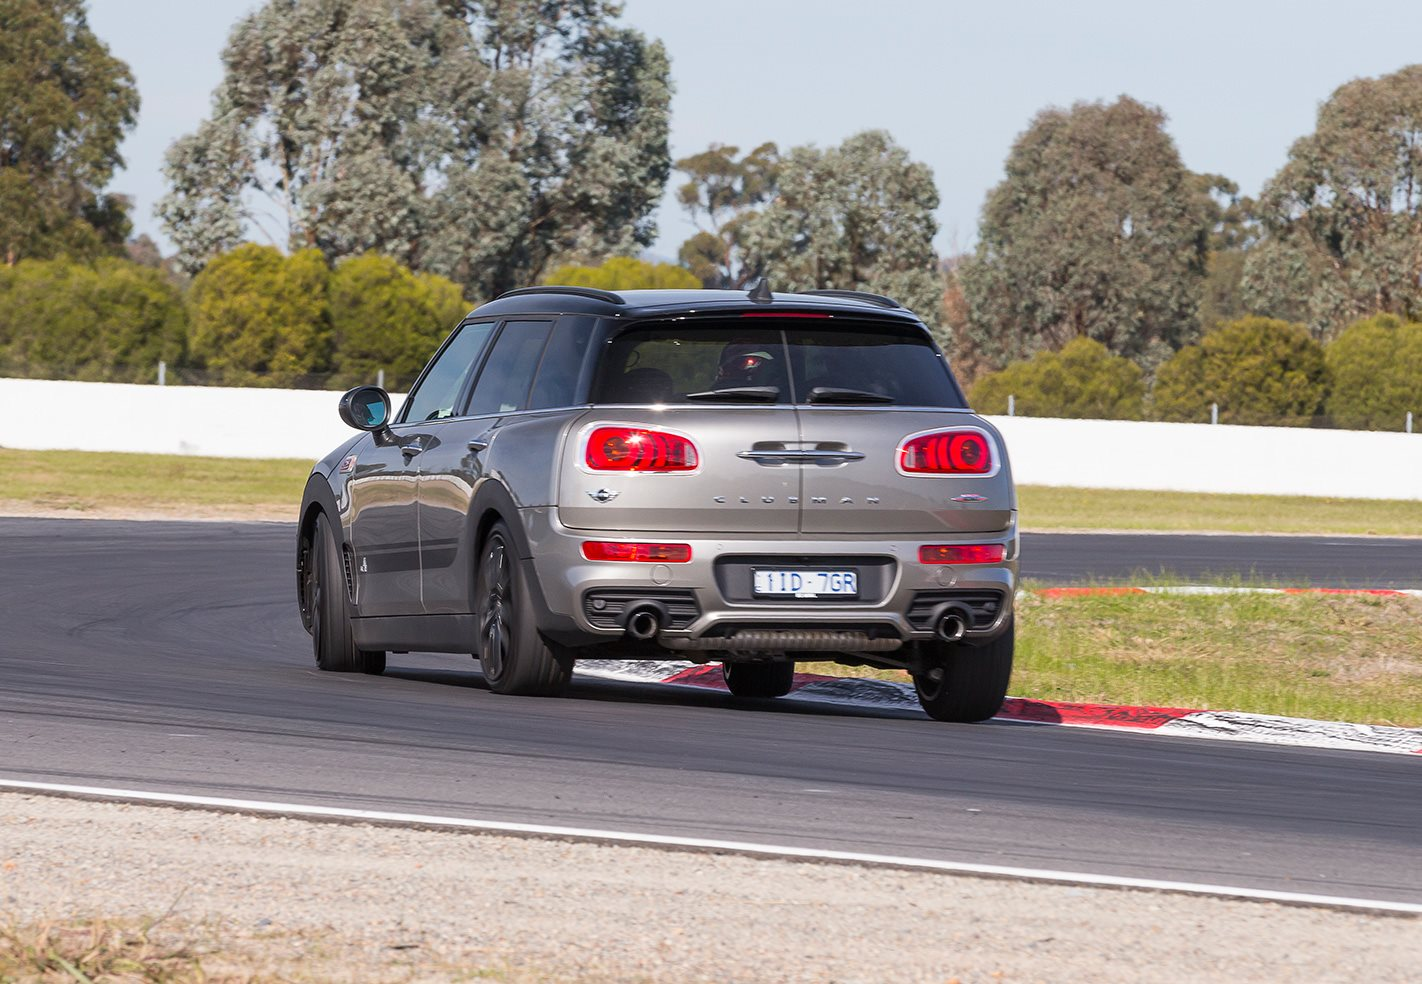 2017 Mini JCW Clubman rear.jpg